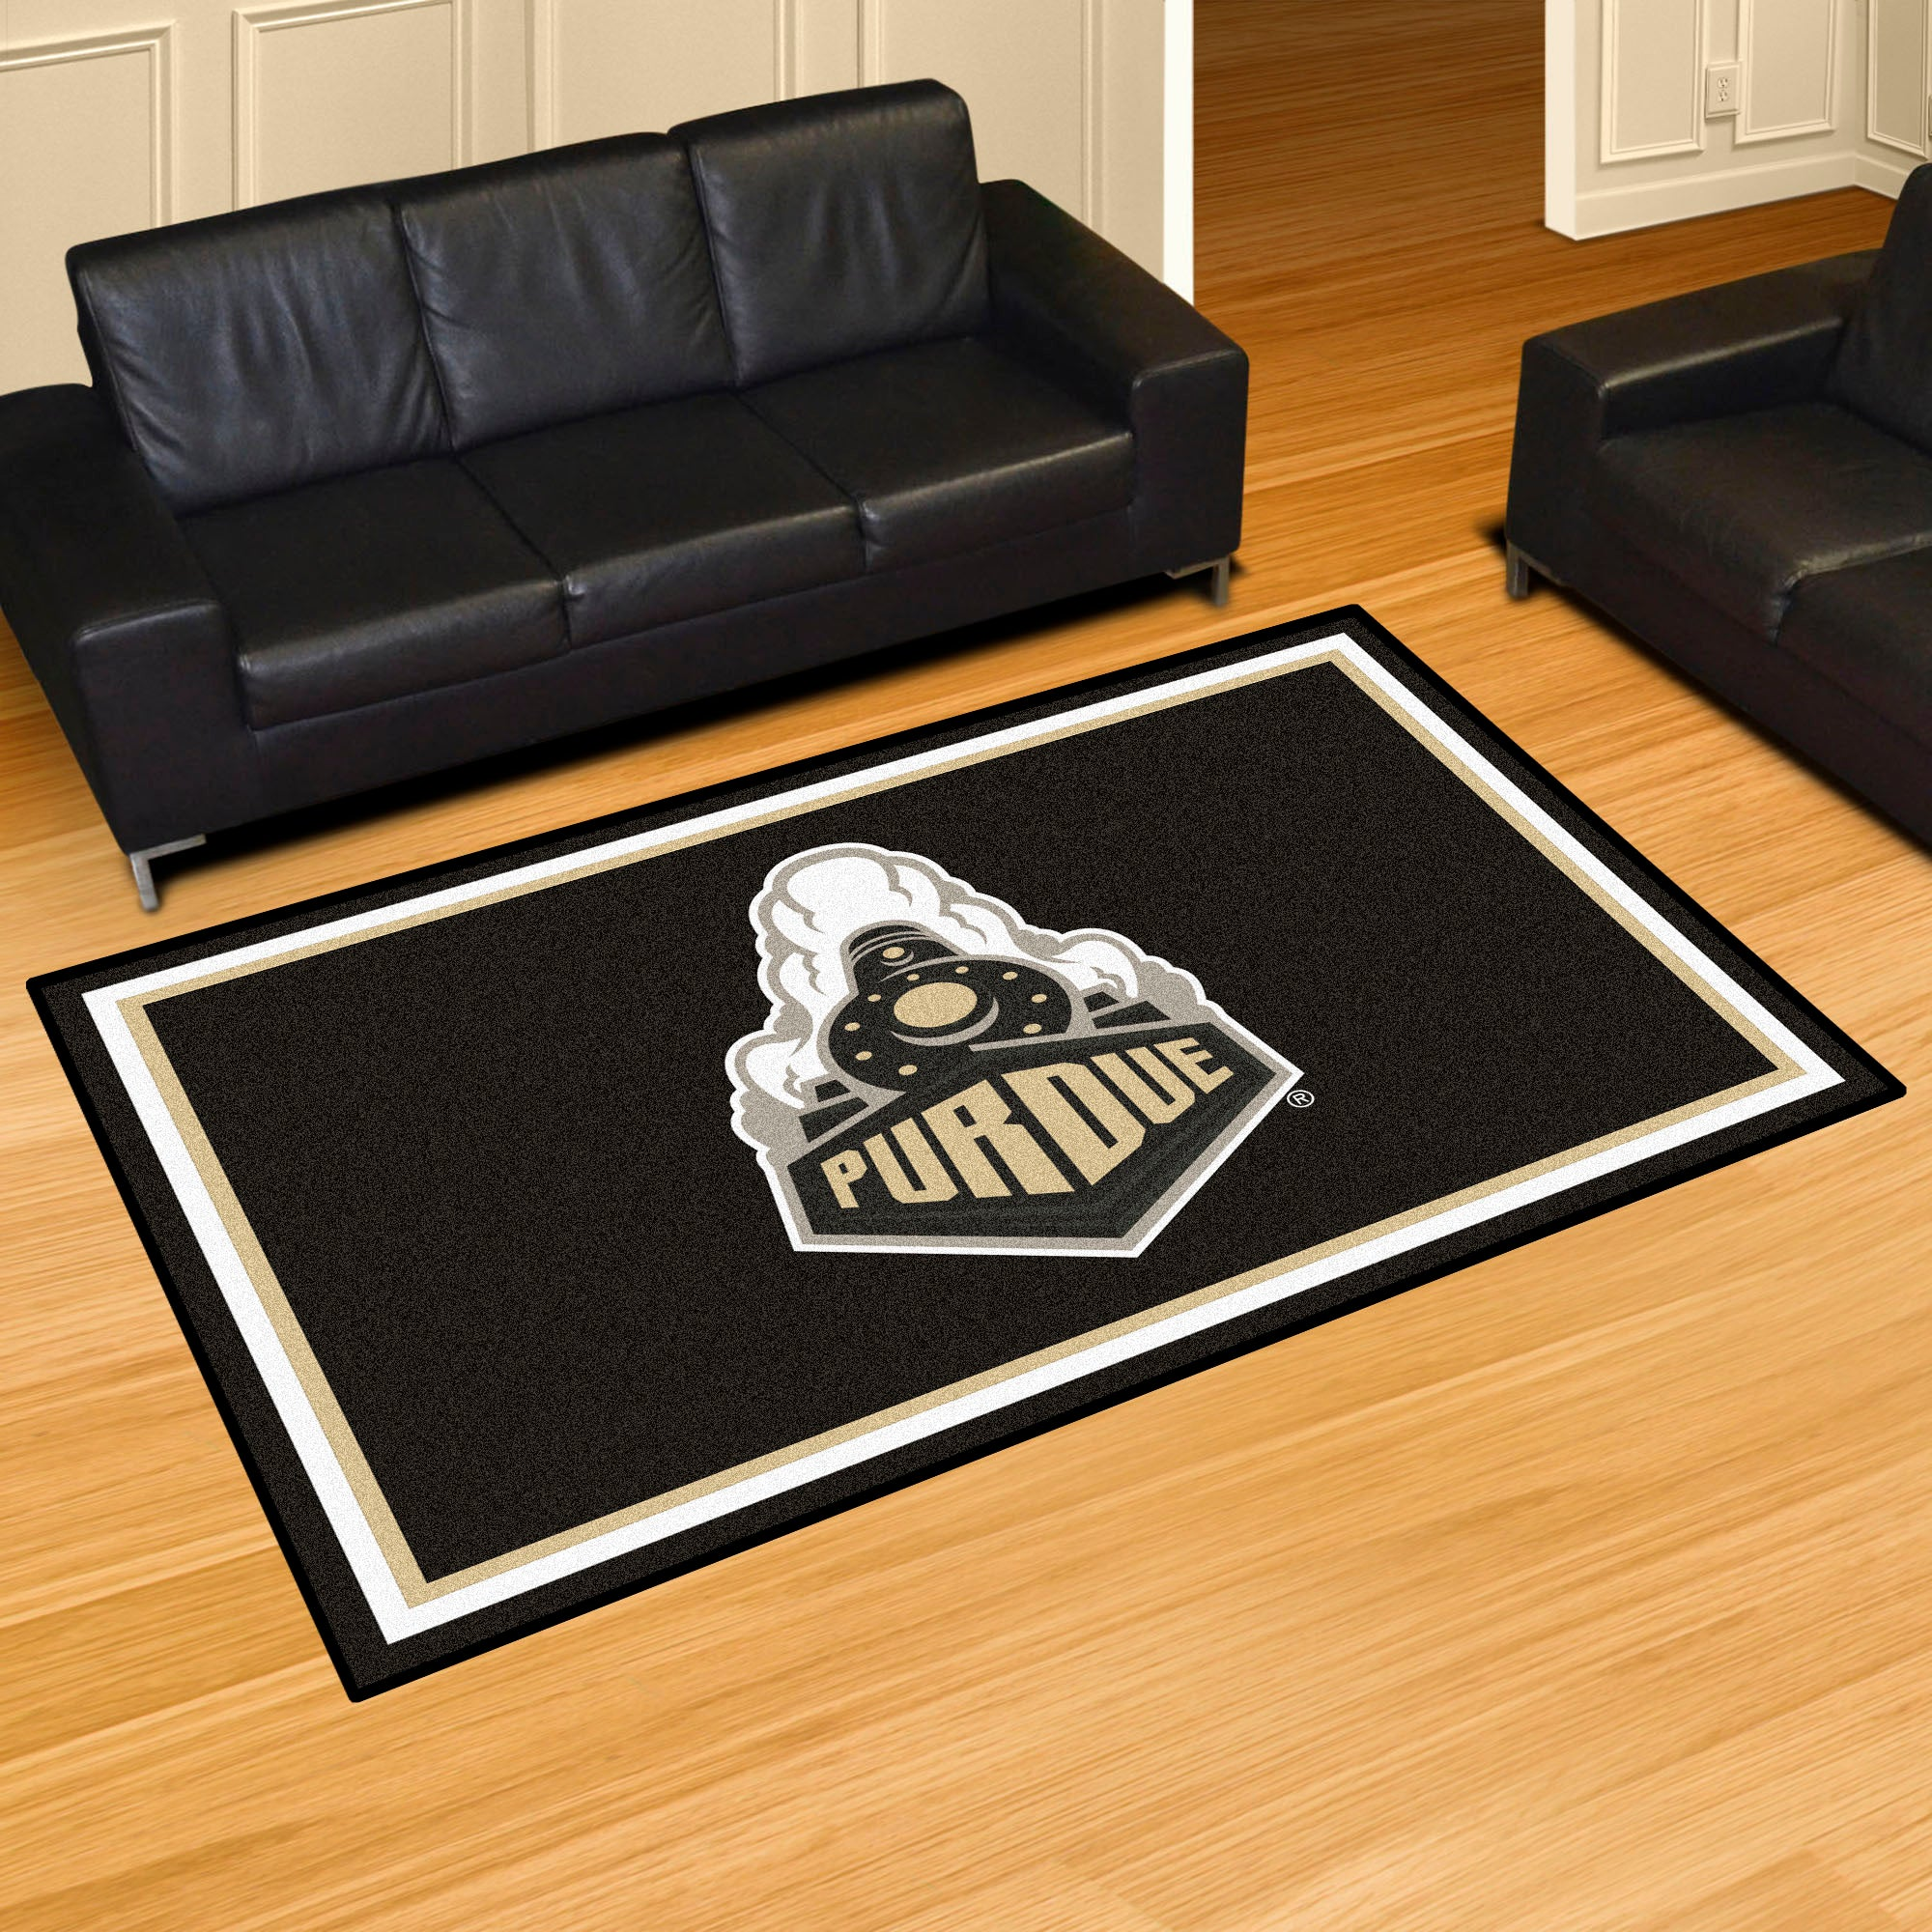 Purdue University Train Logo Plush Rug  College Area Rug - Fan Rugs